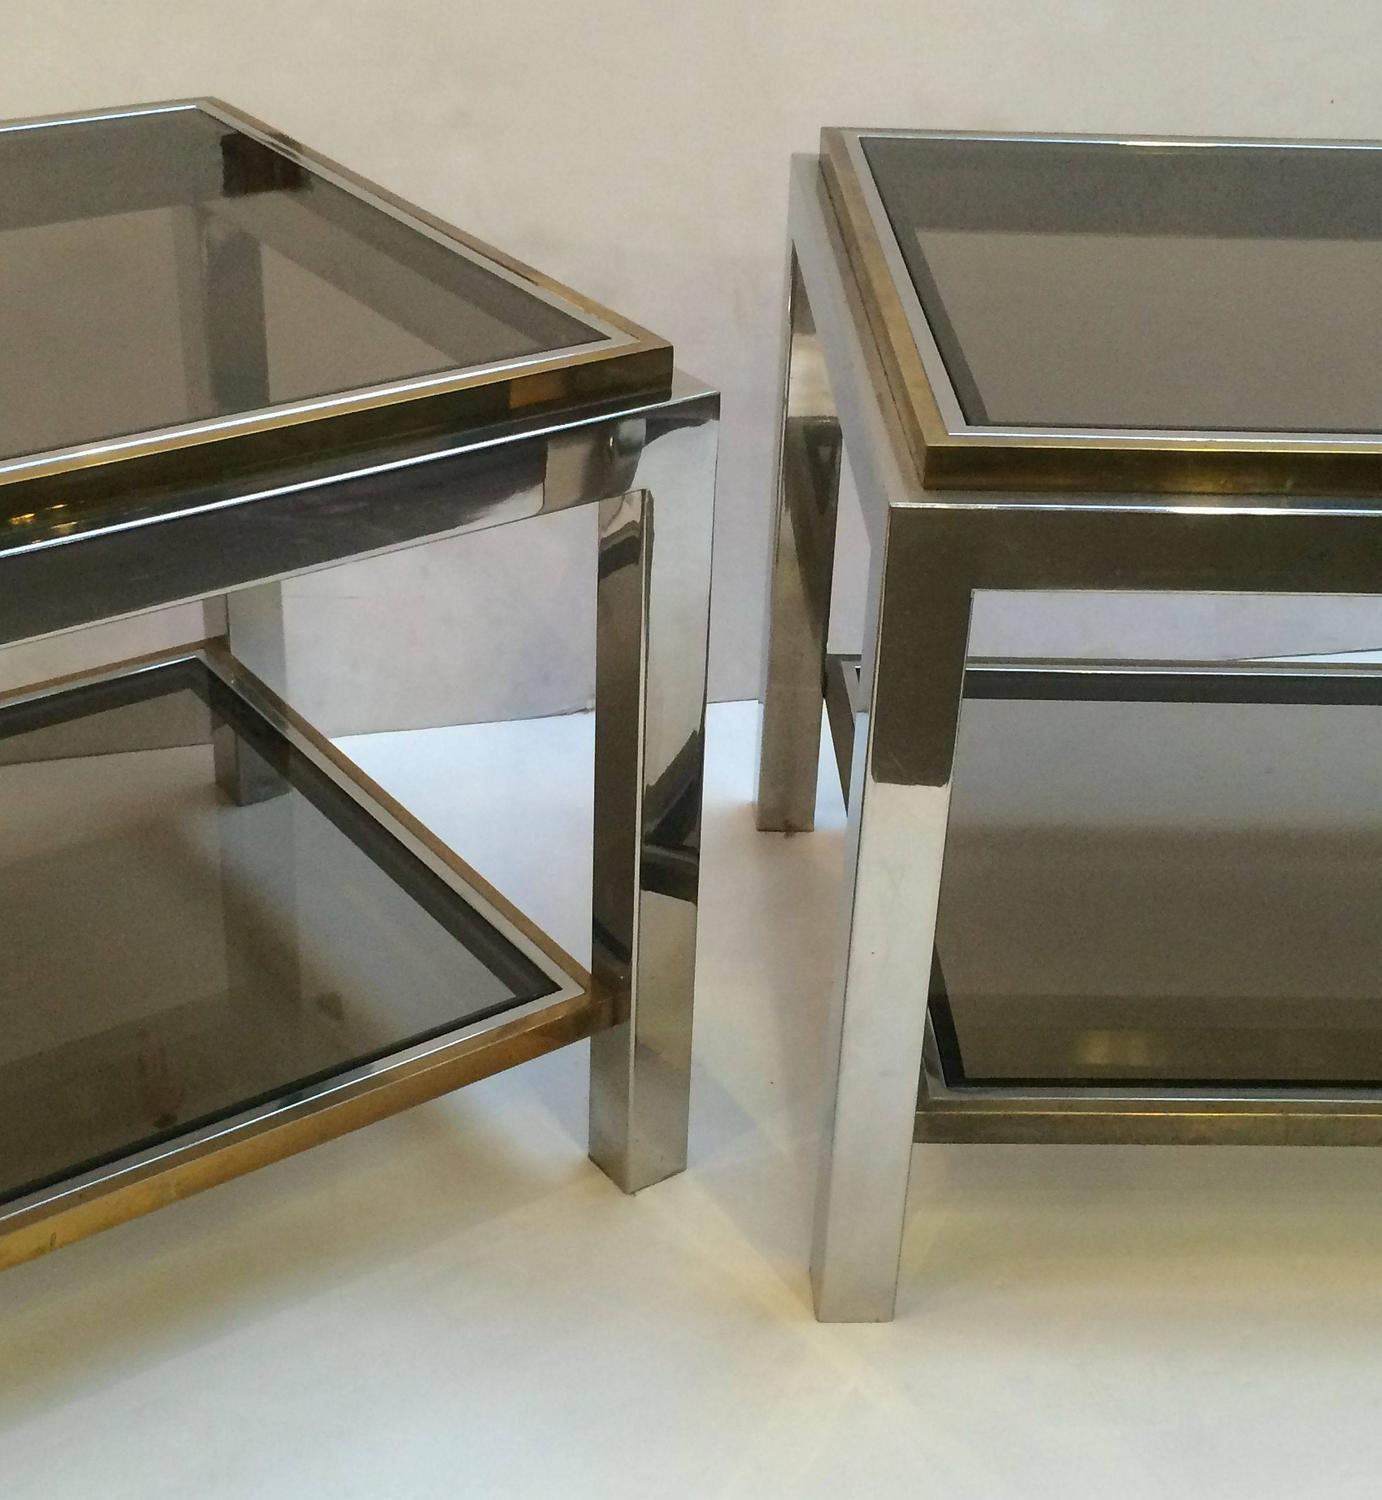 Willy rizzo pair of low tables at 1stdibs for Table willy rizzo